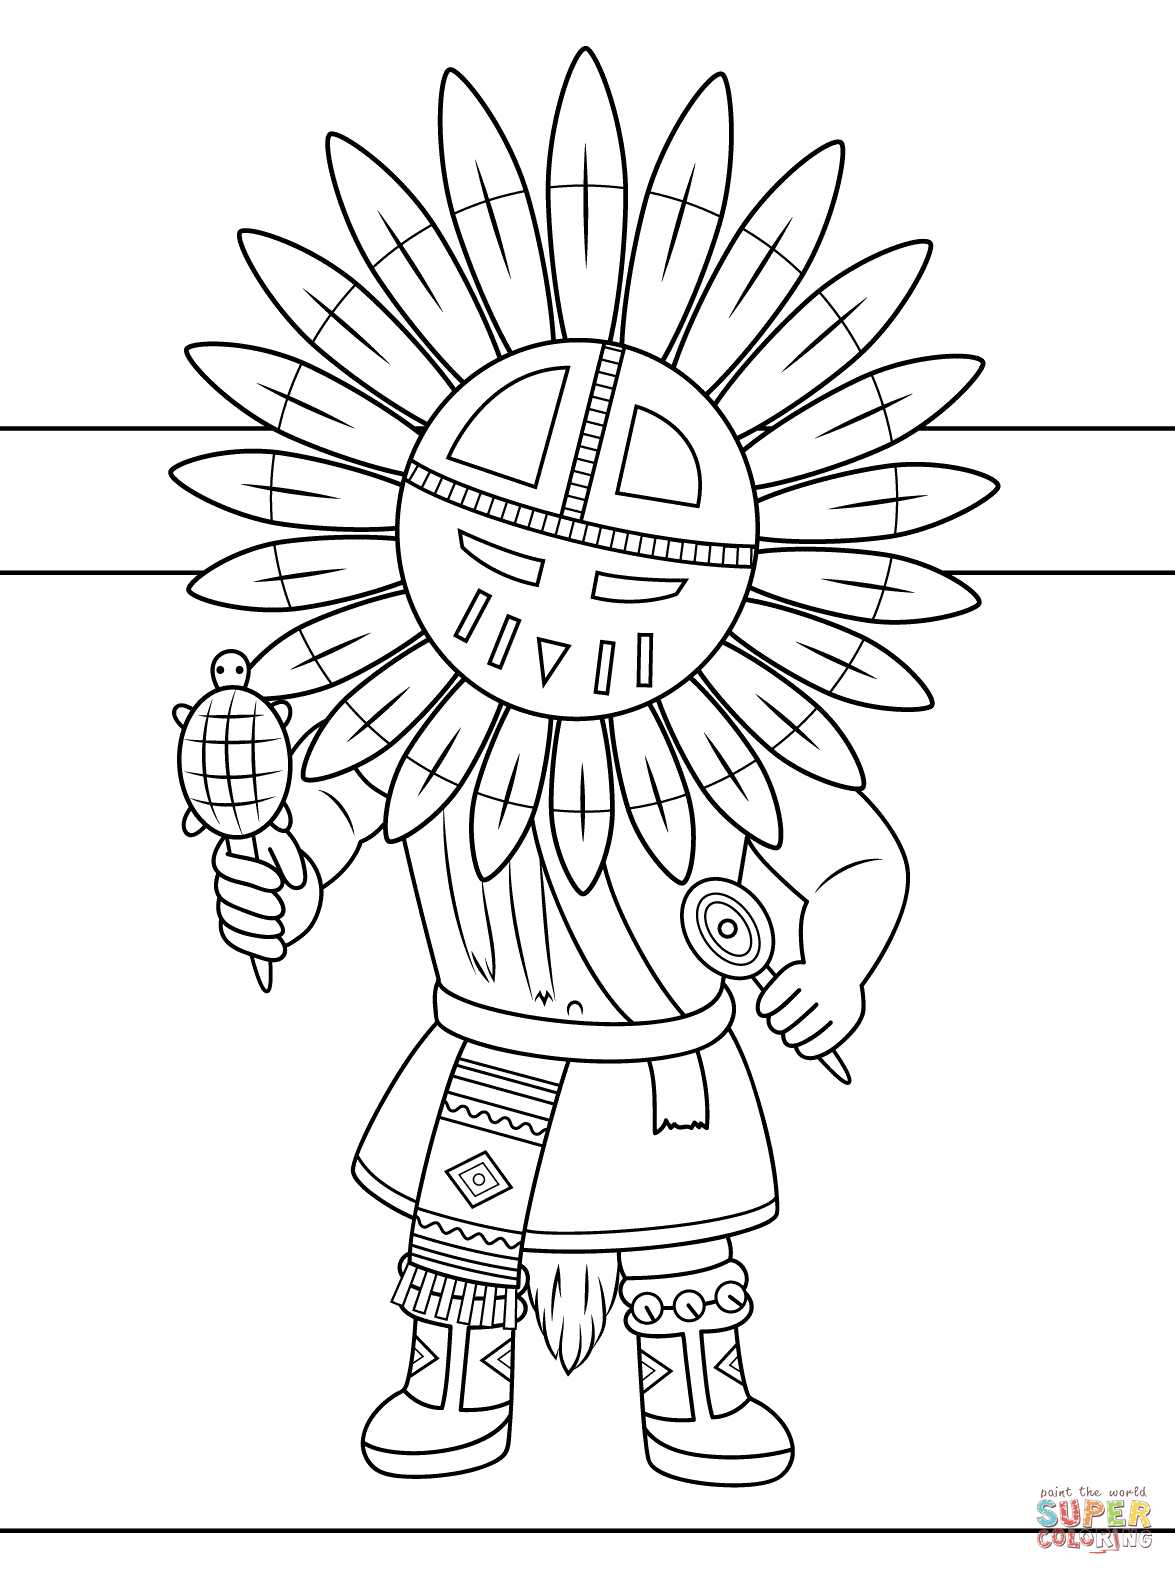 Kachina Doll Coloring Page From Native Americans Category Select From 27626 Printable Crafts Of Cartoon Coloring Books Flag Coloring Pages Cute Coloring Pages